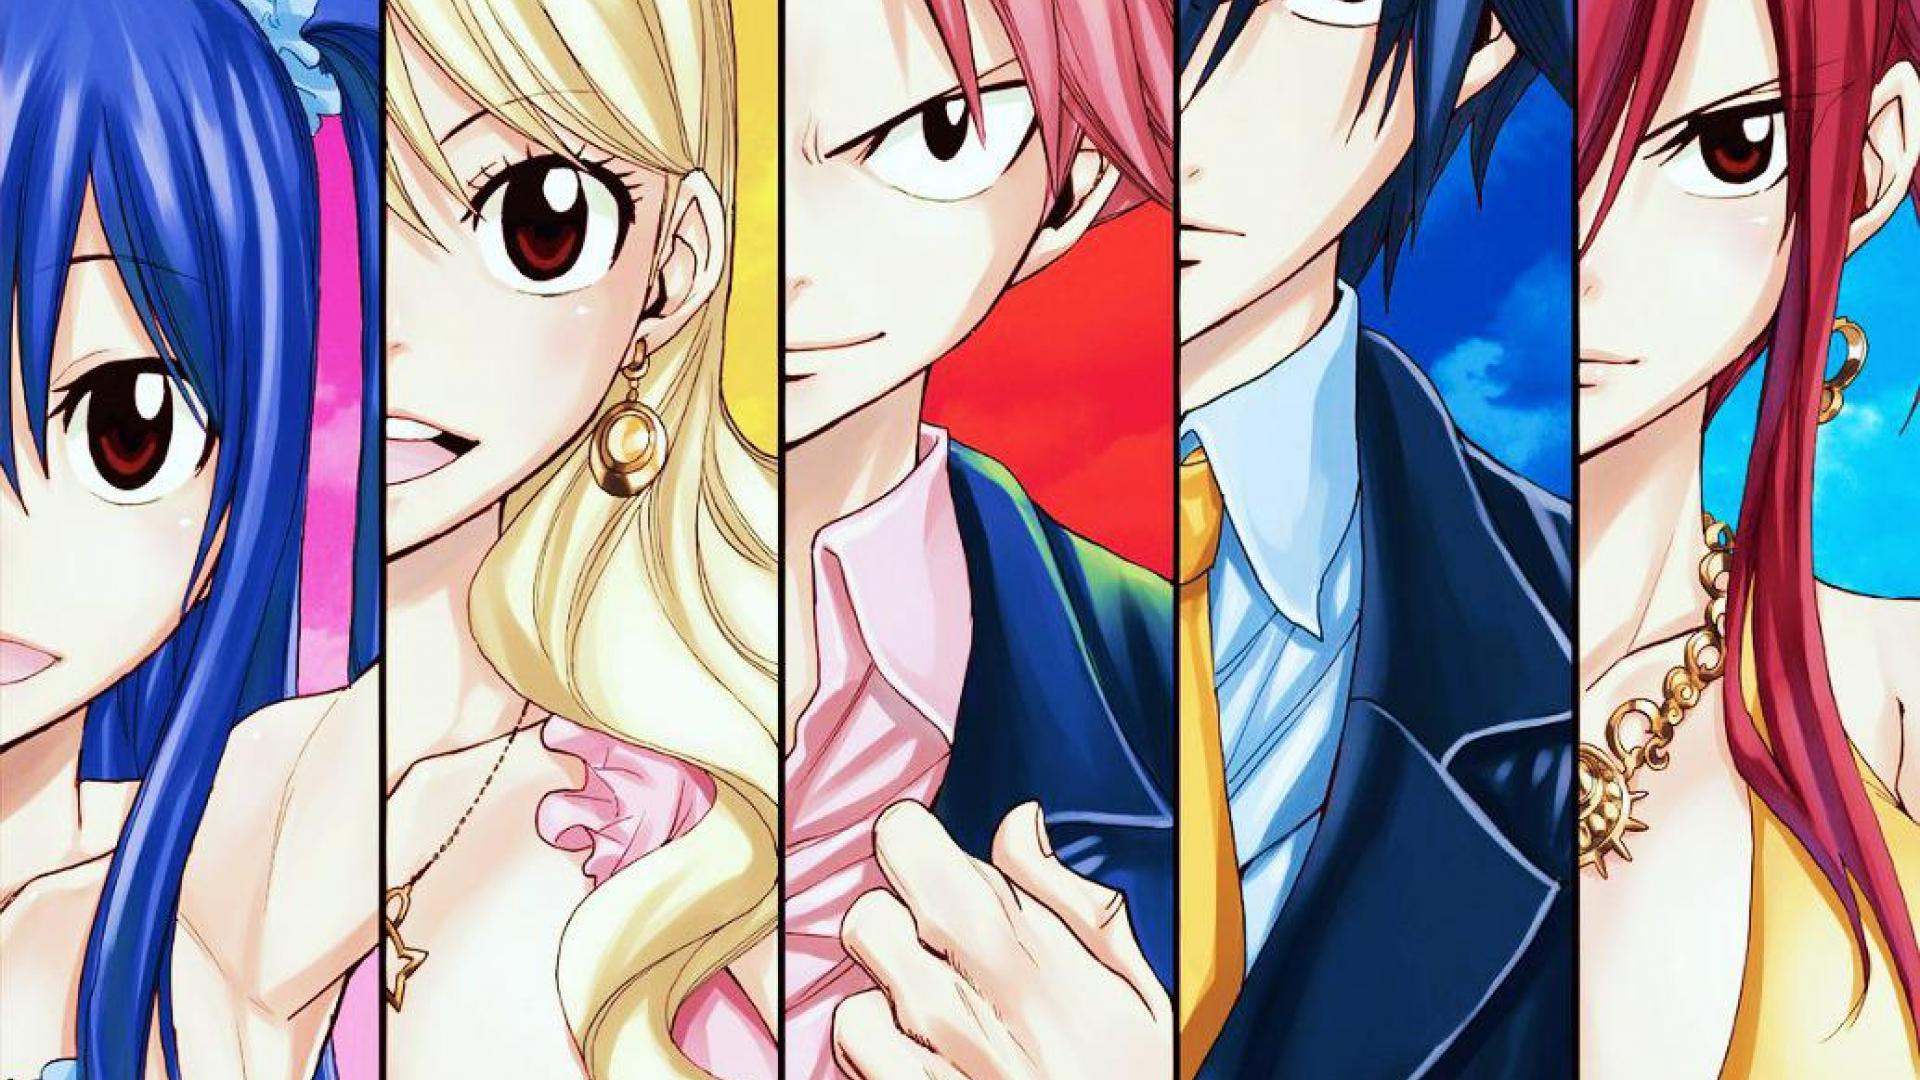 Fairy Tail Wallpapers HD - WallpaperSafari